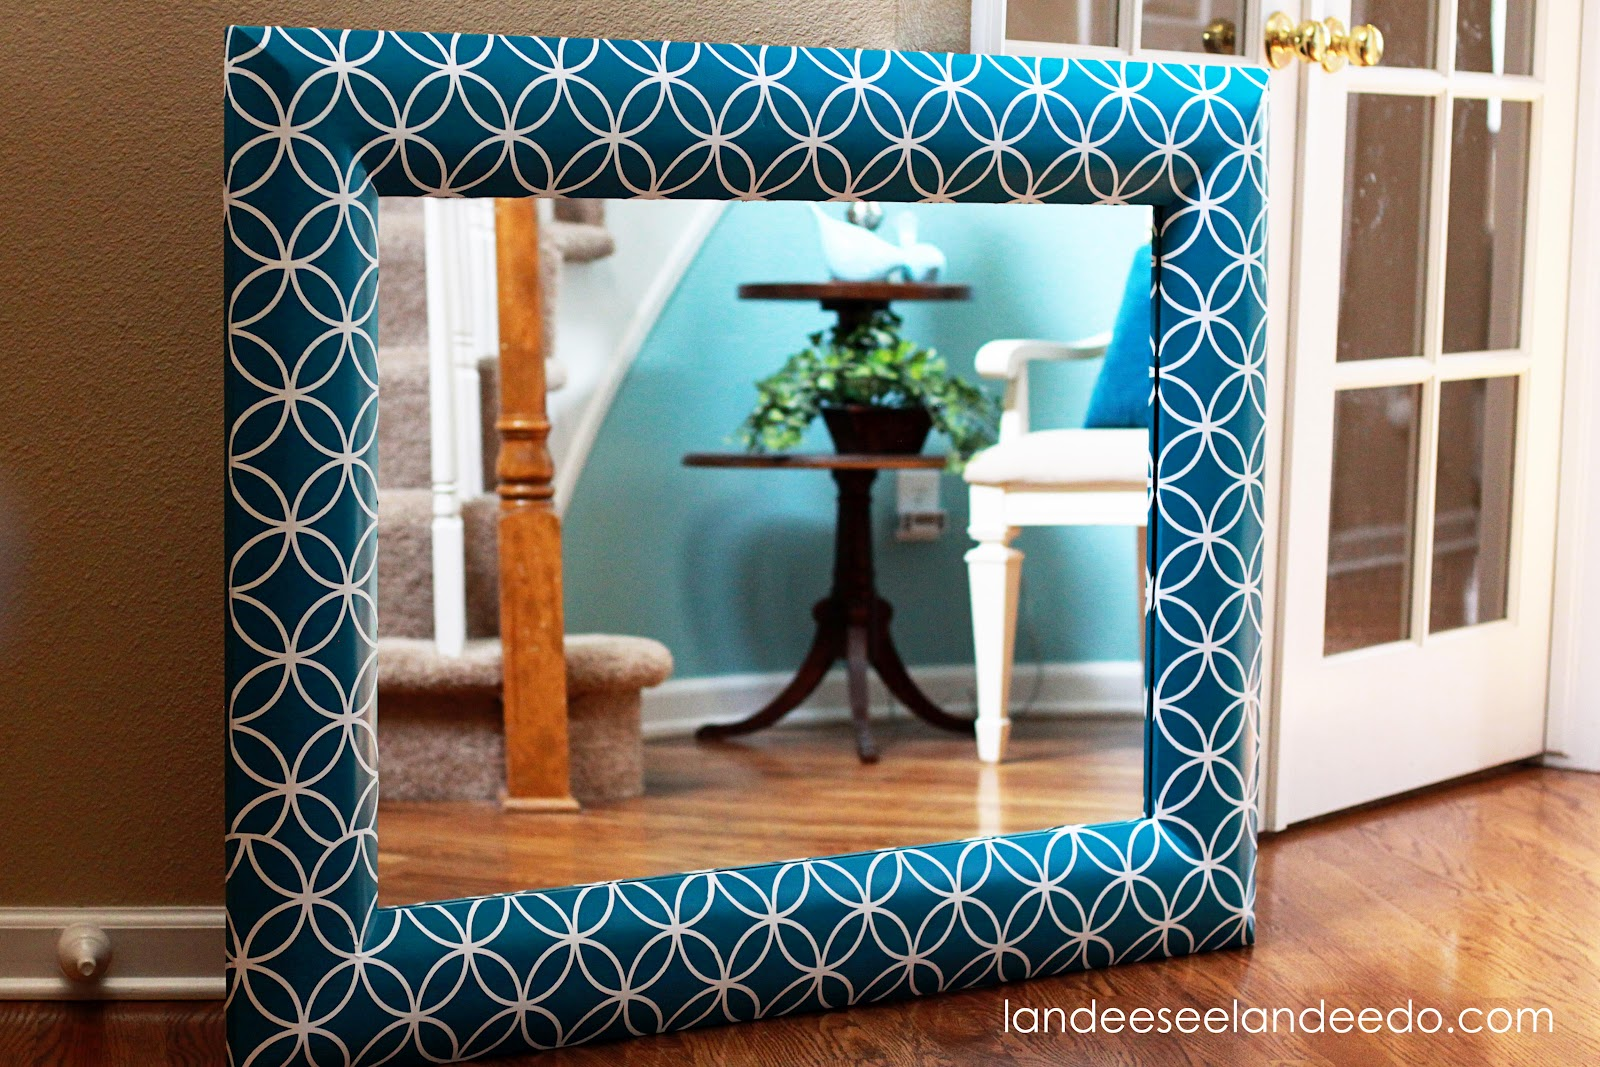 Mirror Makeover DIY Step-by-Step Tutorial {using Vinyl!} - landeelu.com